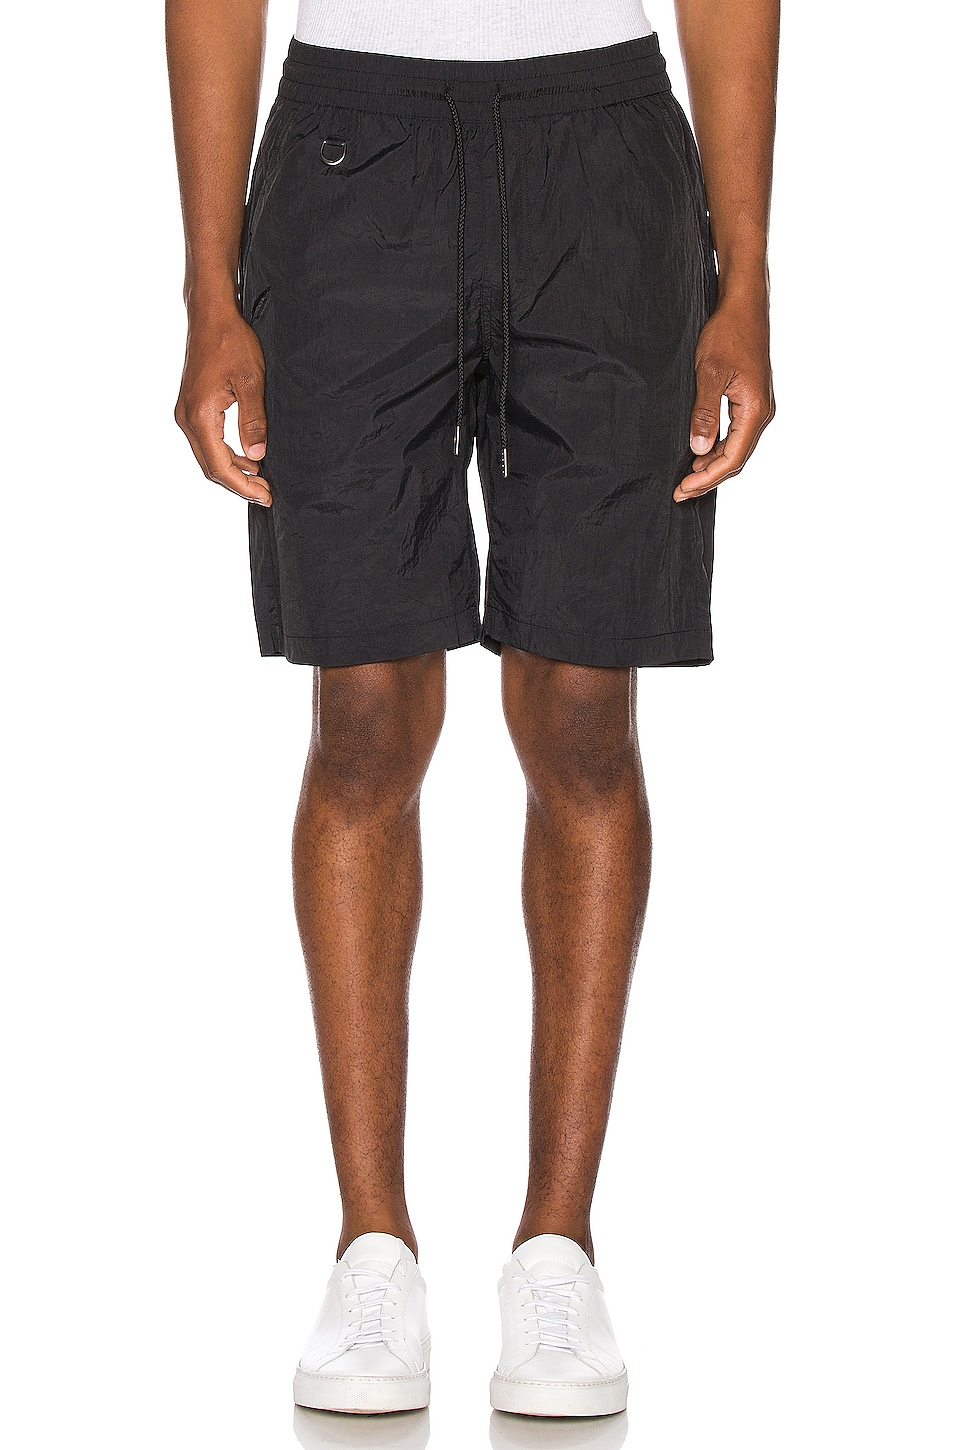 Publish Nylon Sprinter Short in Black